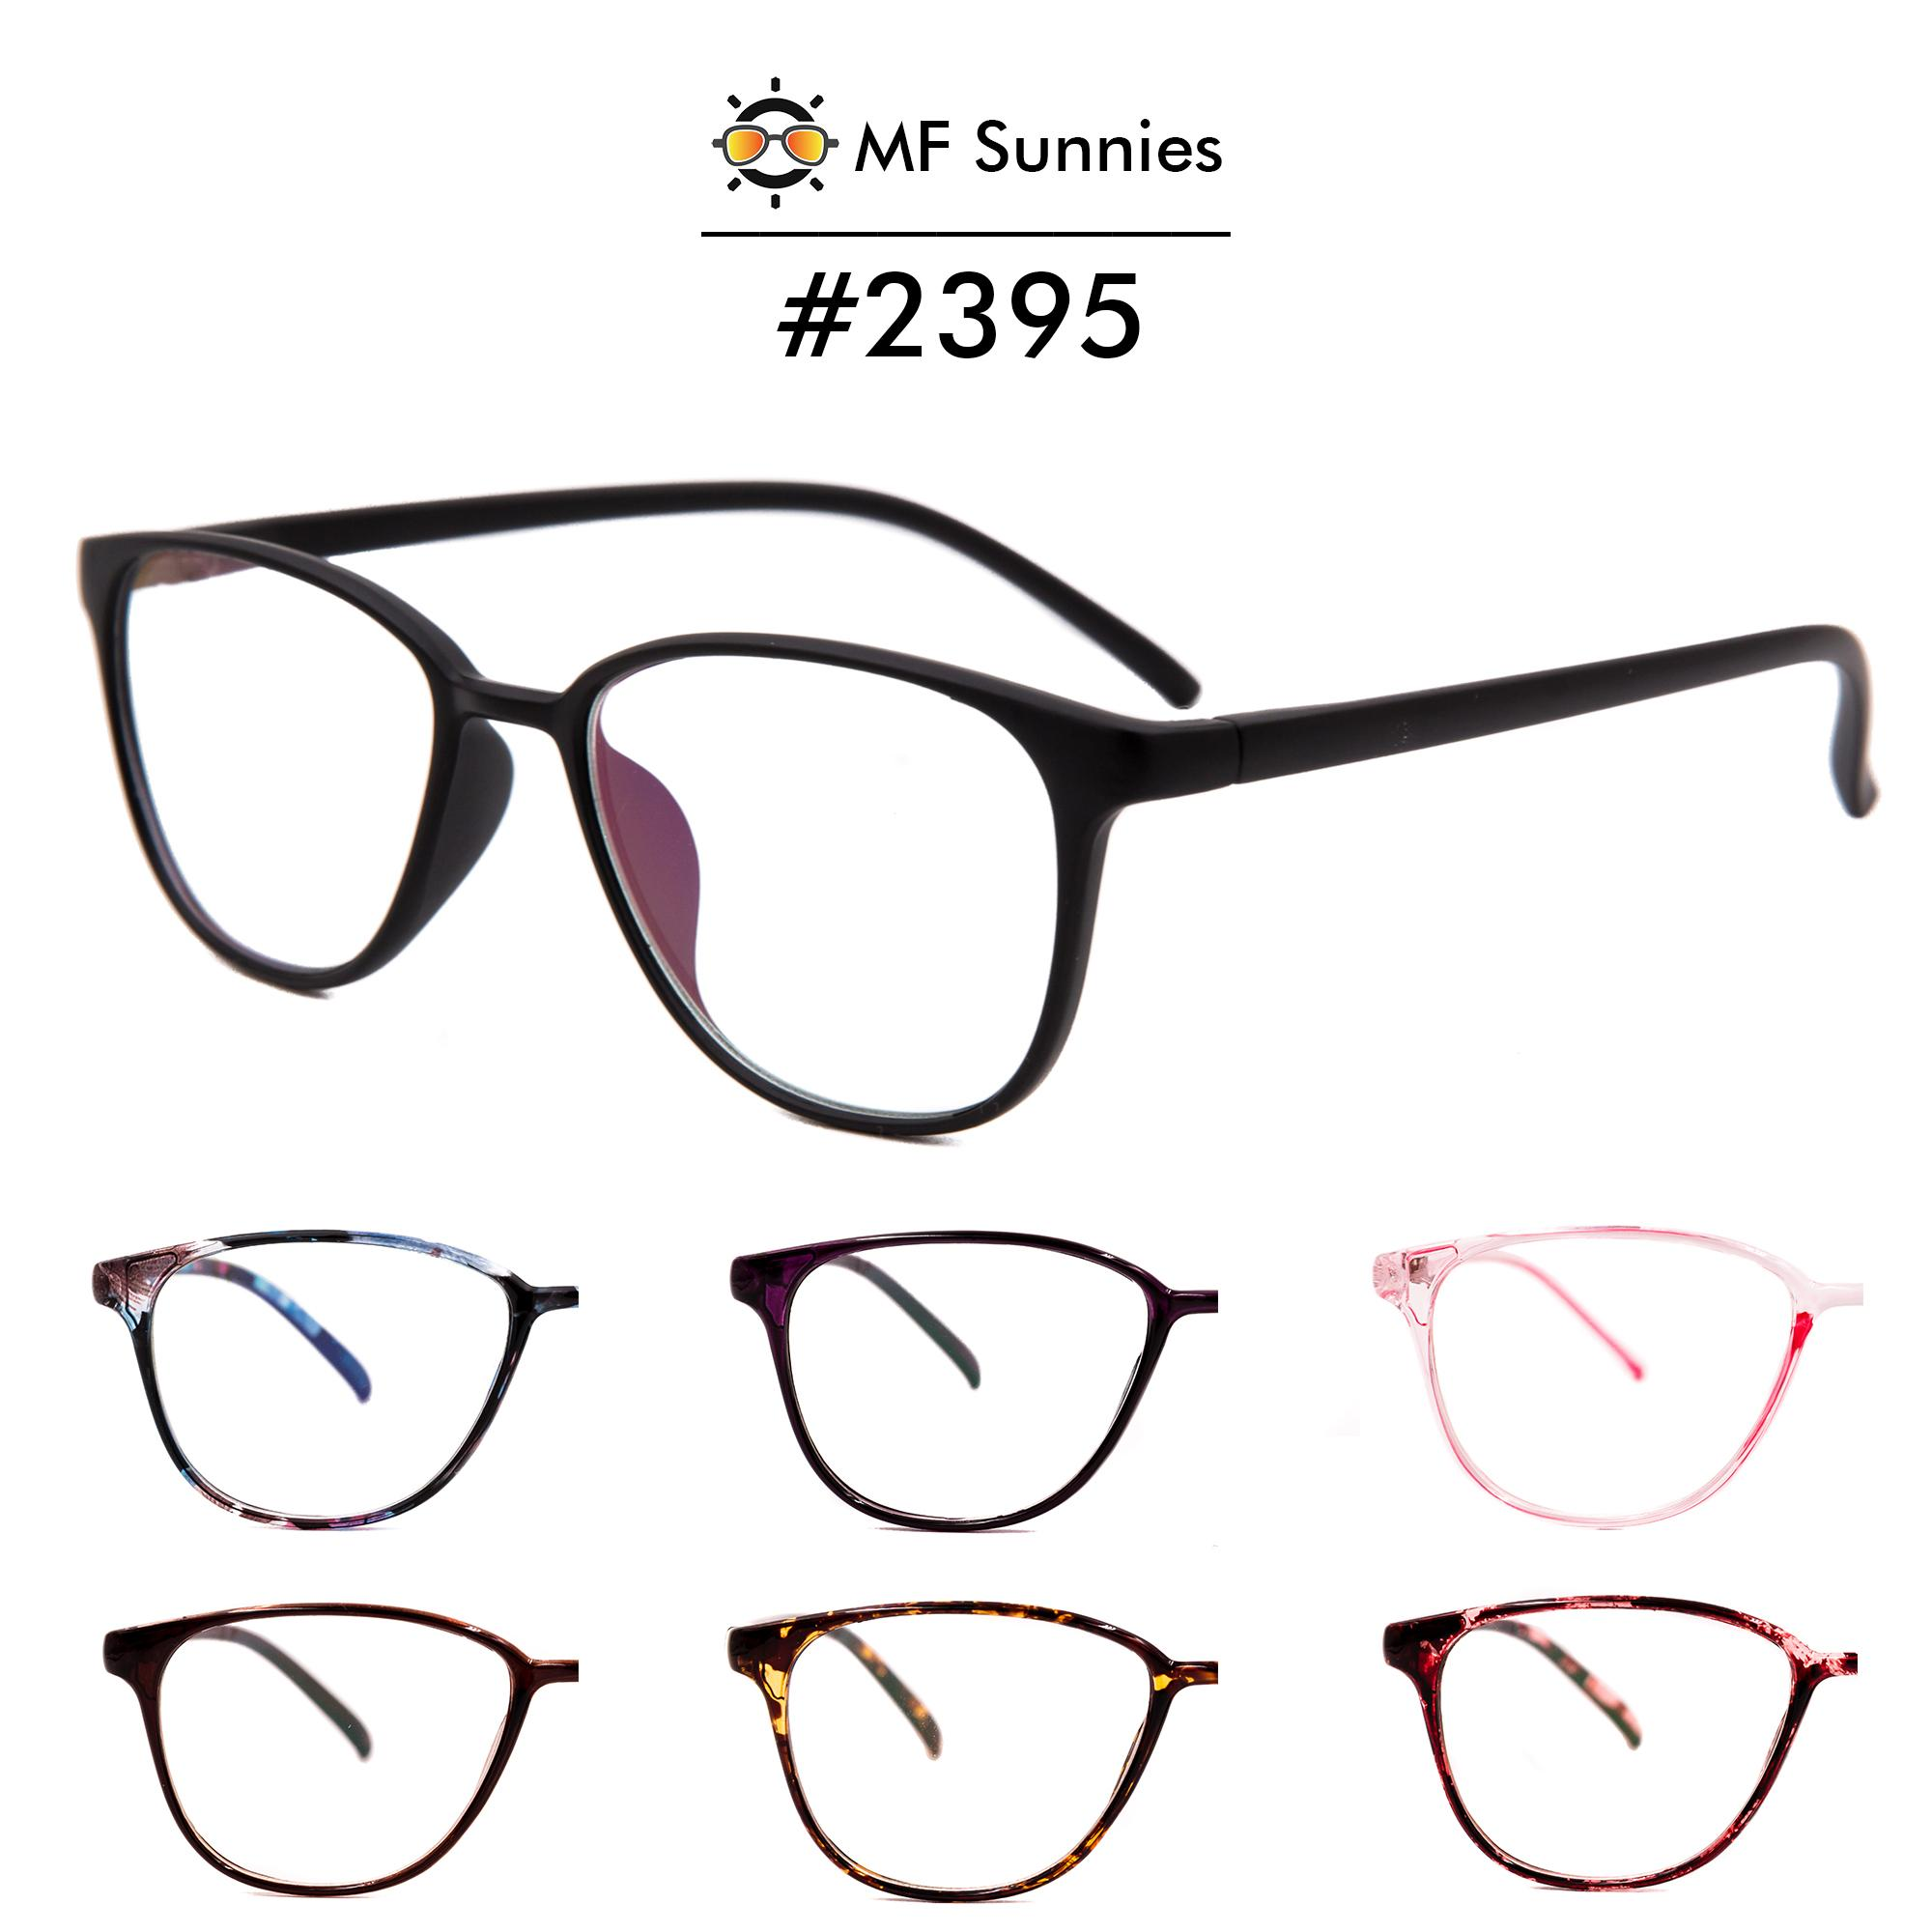 4d89e2d7e2c MFSunnies Computer Anti Blue light Radiation Eyewear High quality frame  Premium Acetate material Metal Hinges